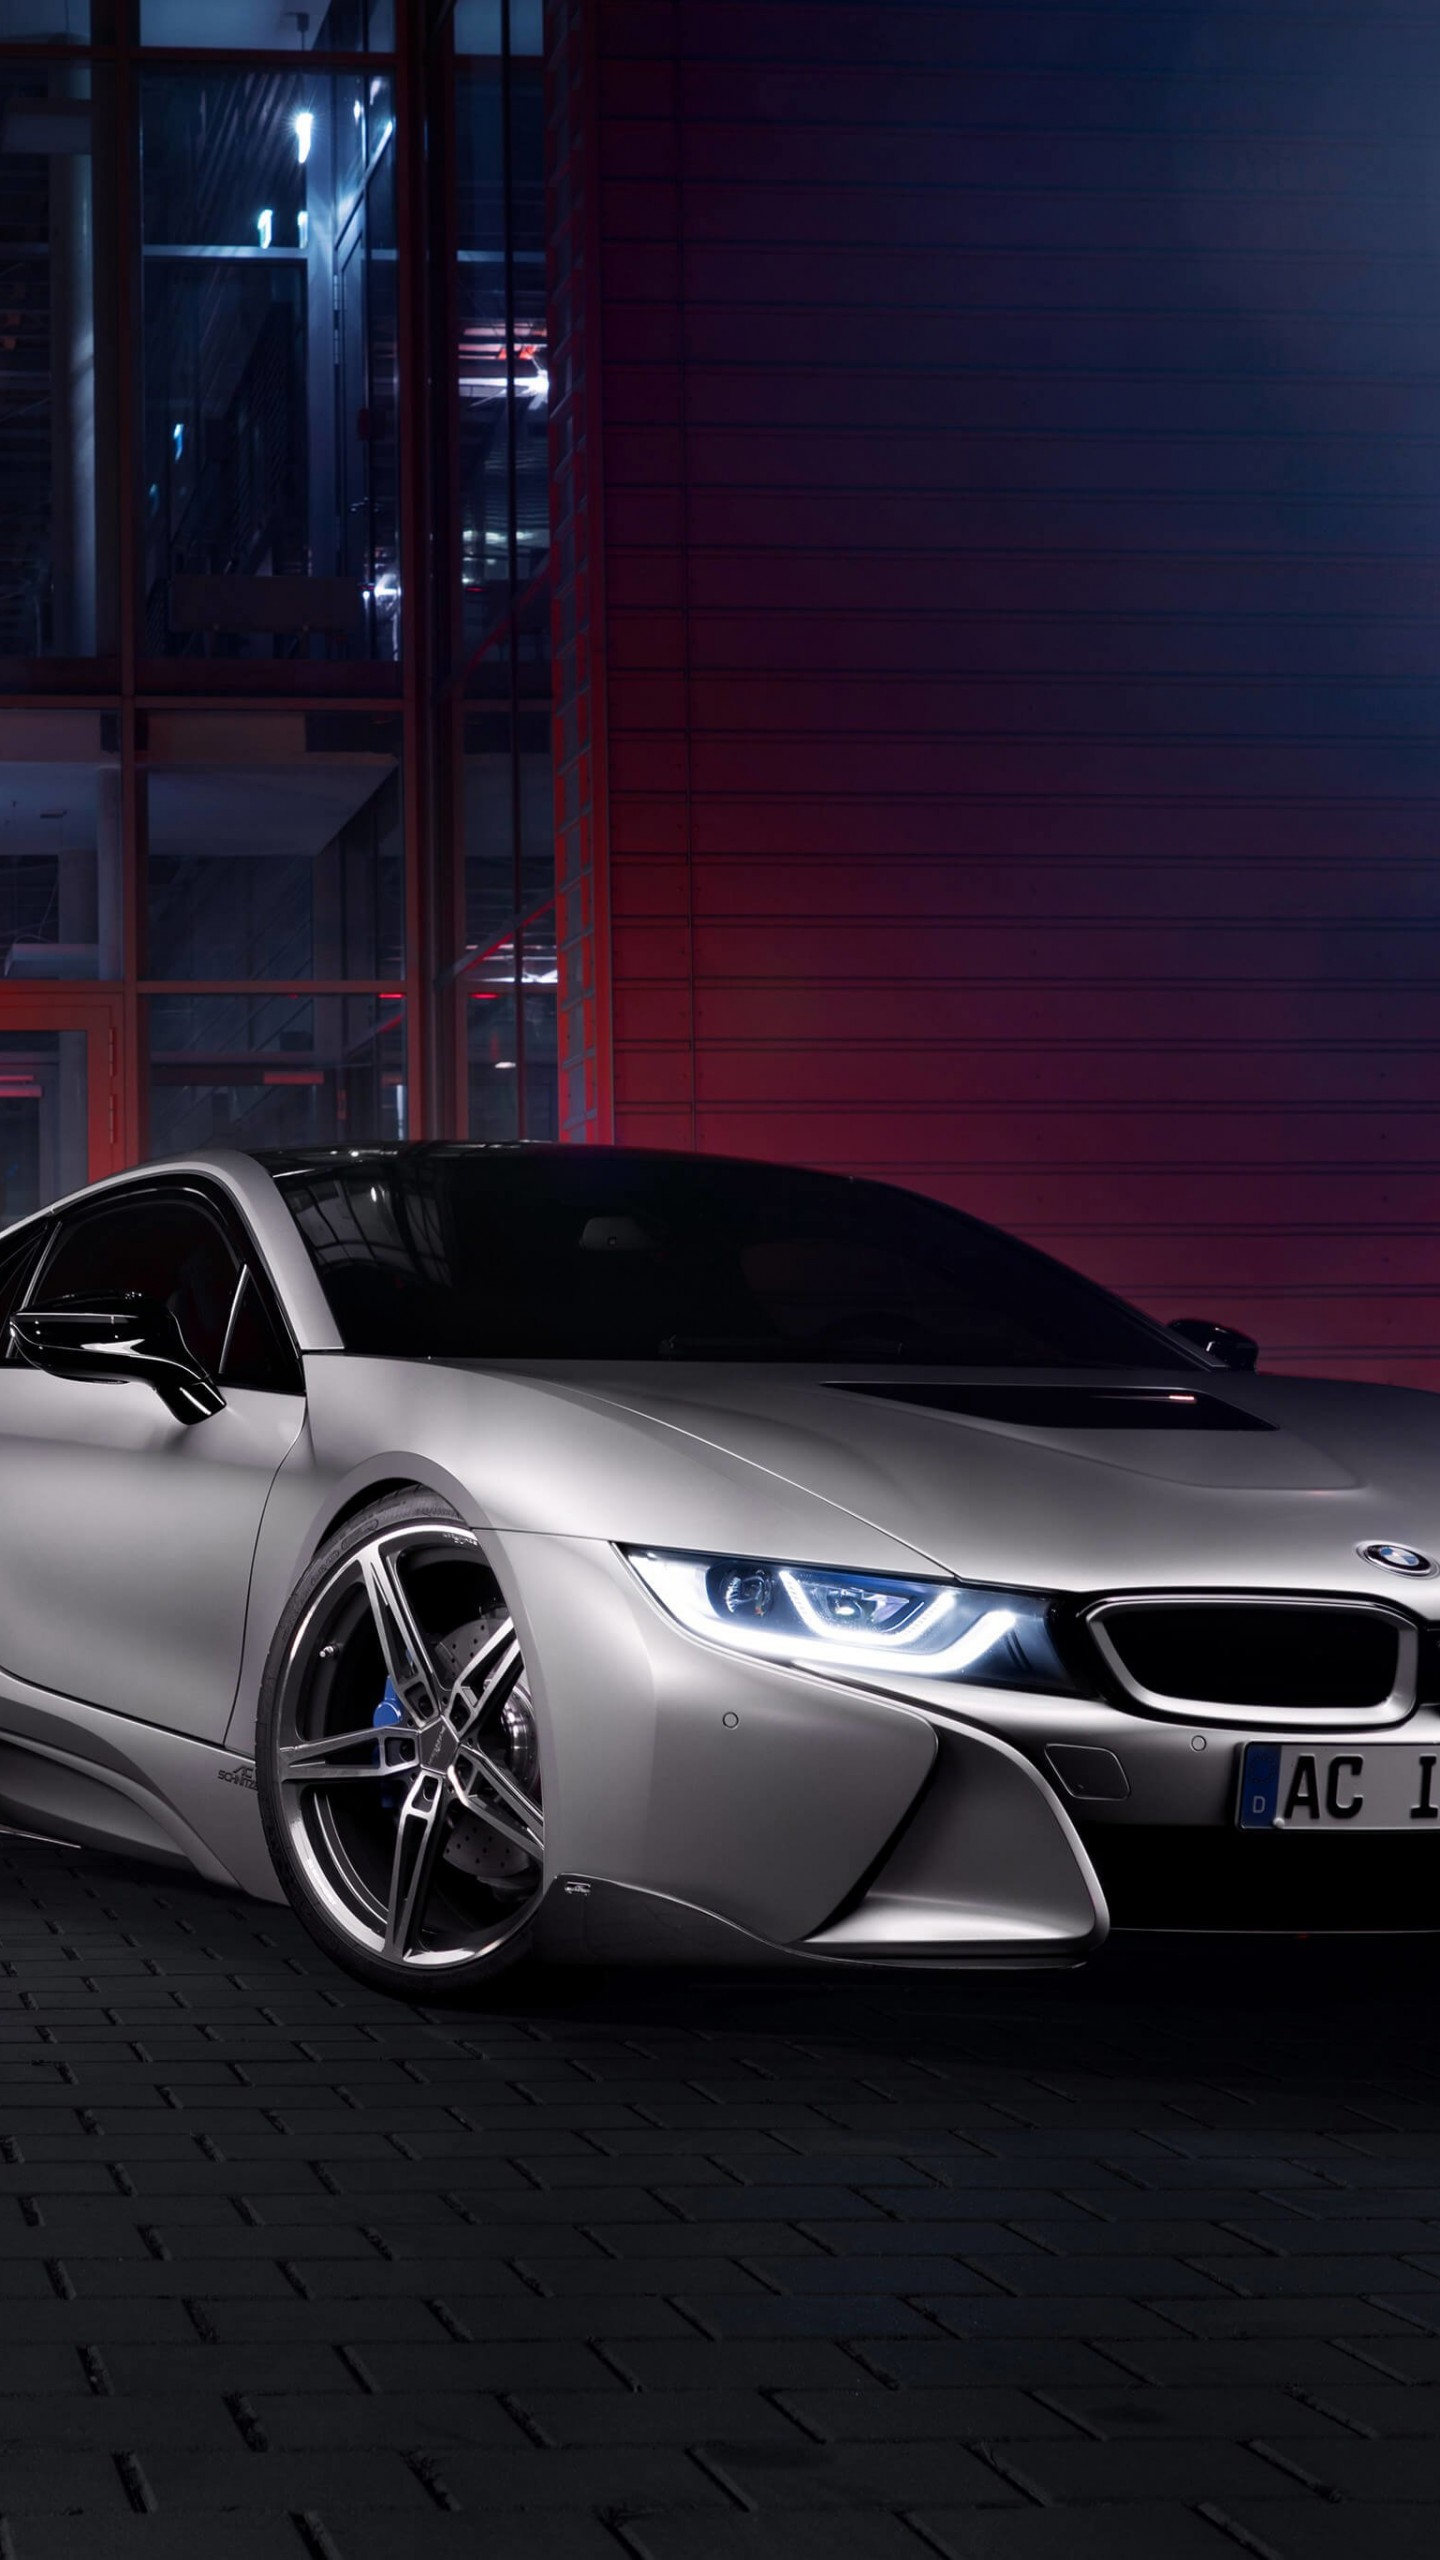 BMW i8 designed by AC Schnitzer Wallpaper for SAMSUNG Galaxy S6